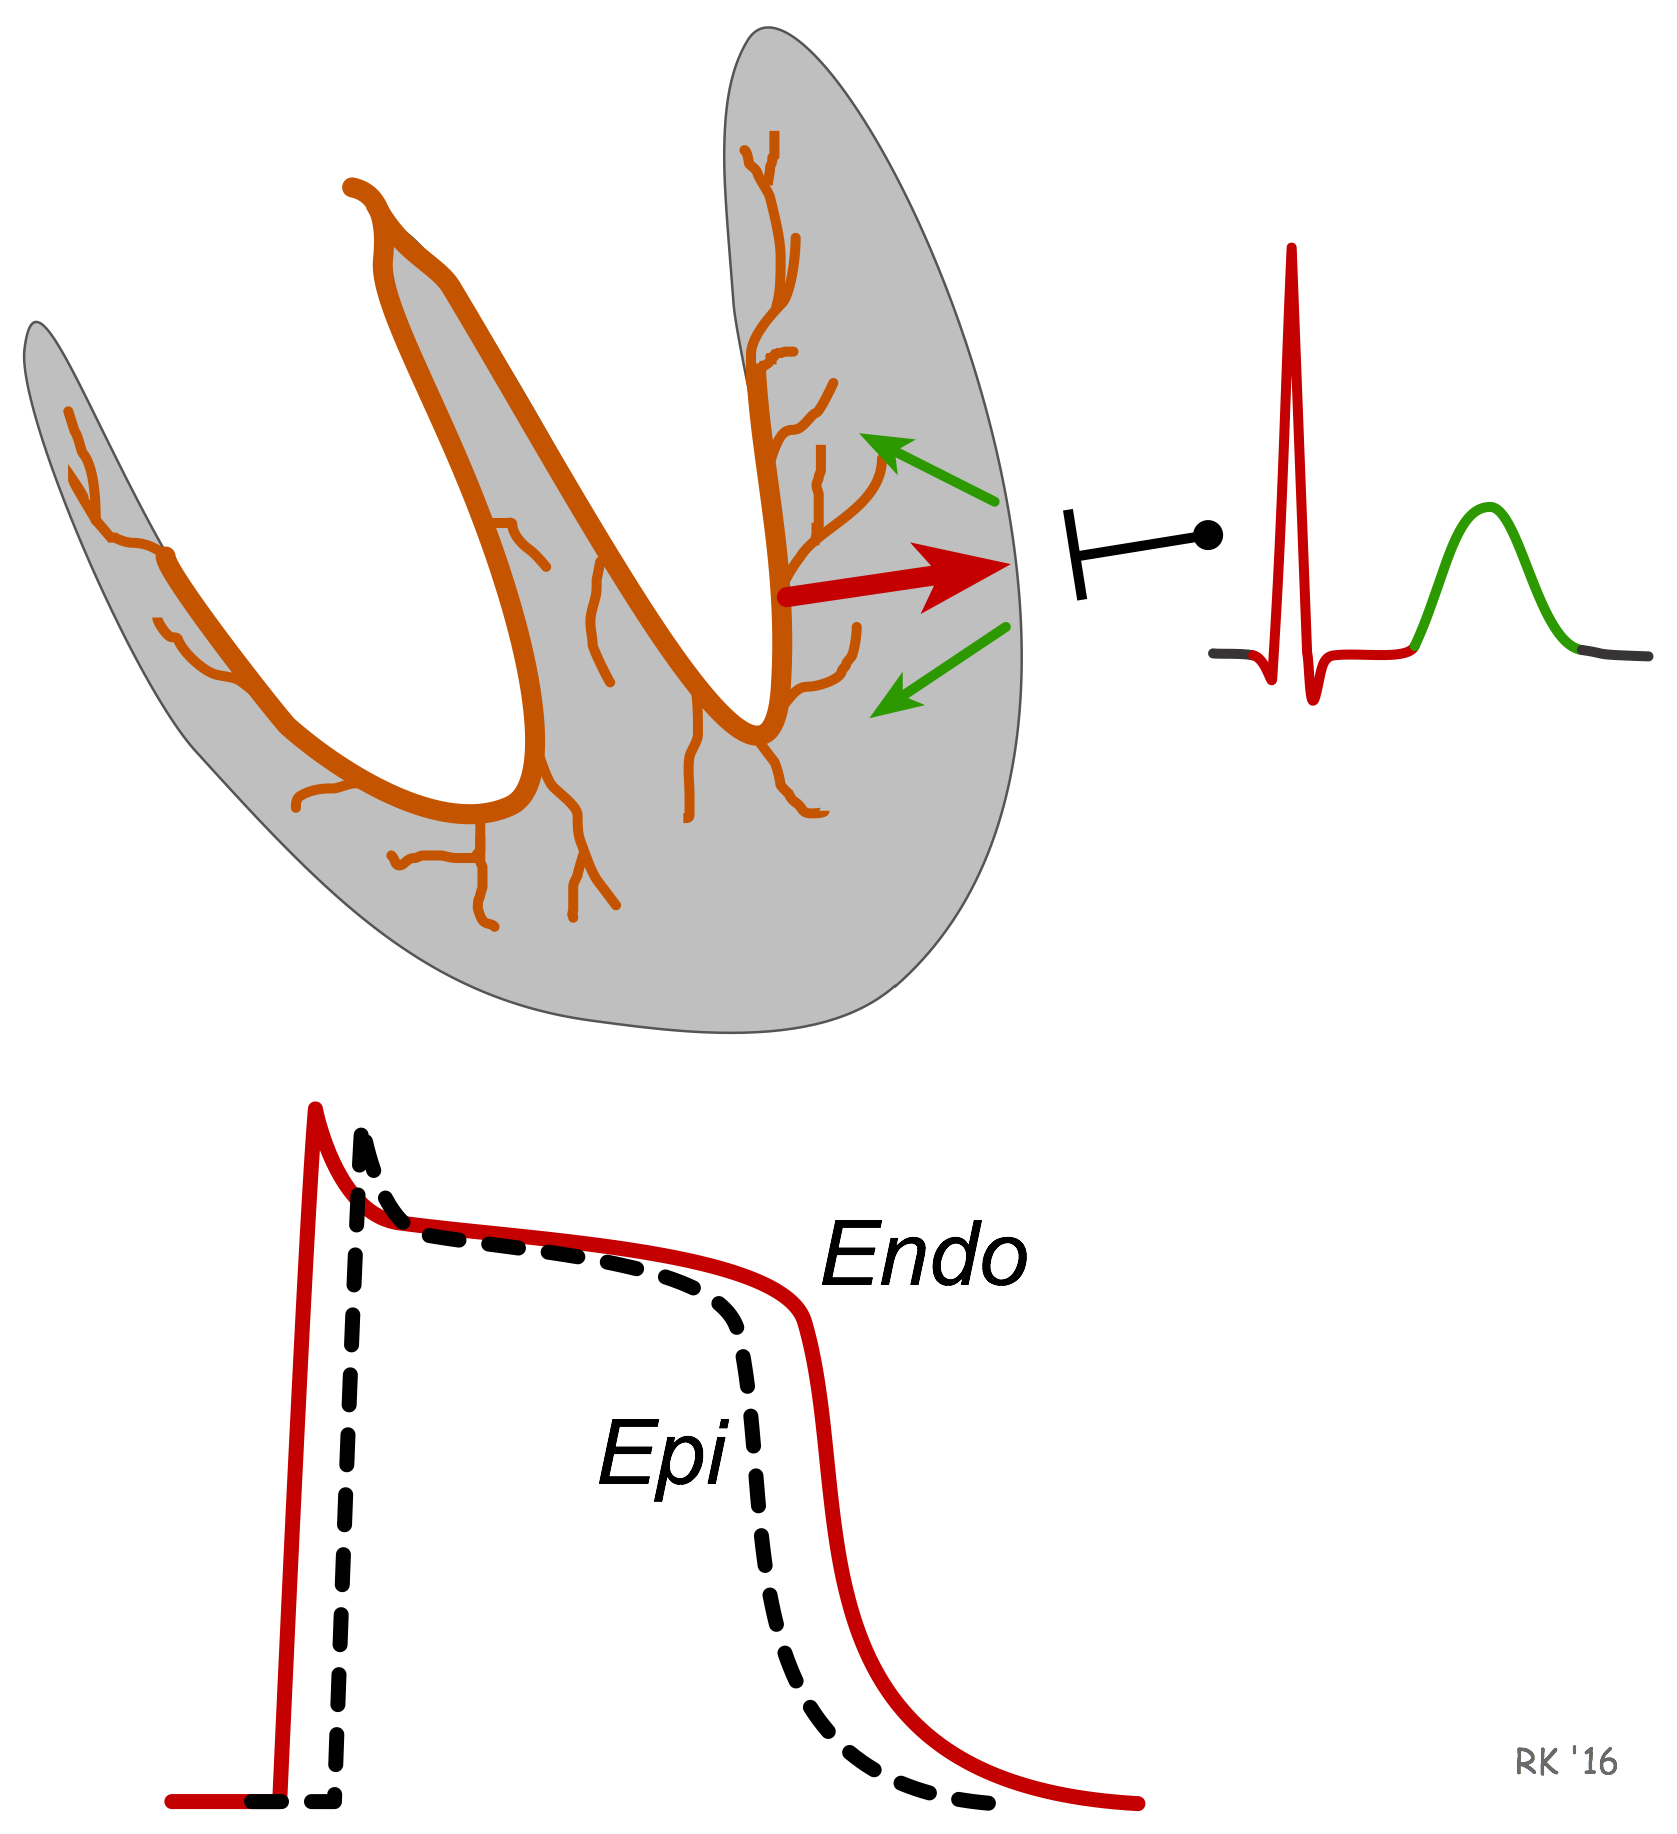 ECG T wave formation